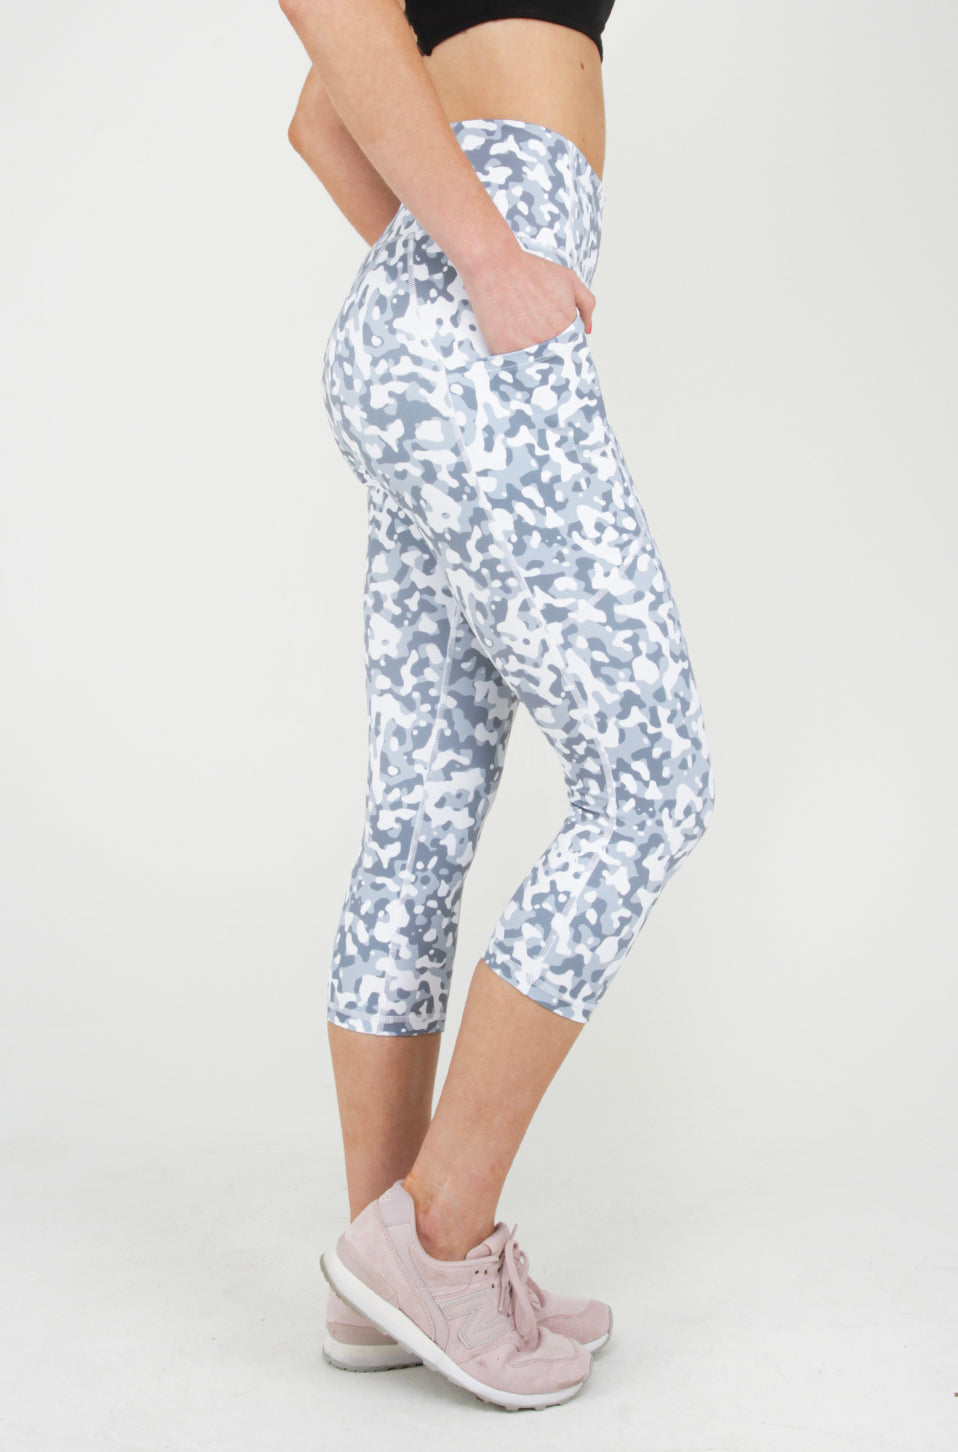 Pebble Capri & Legging - [Luxe Fabric] - Last Chance Item